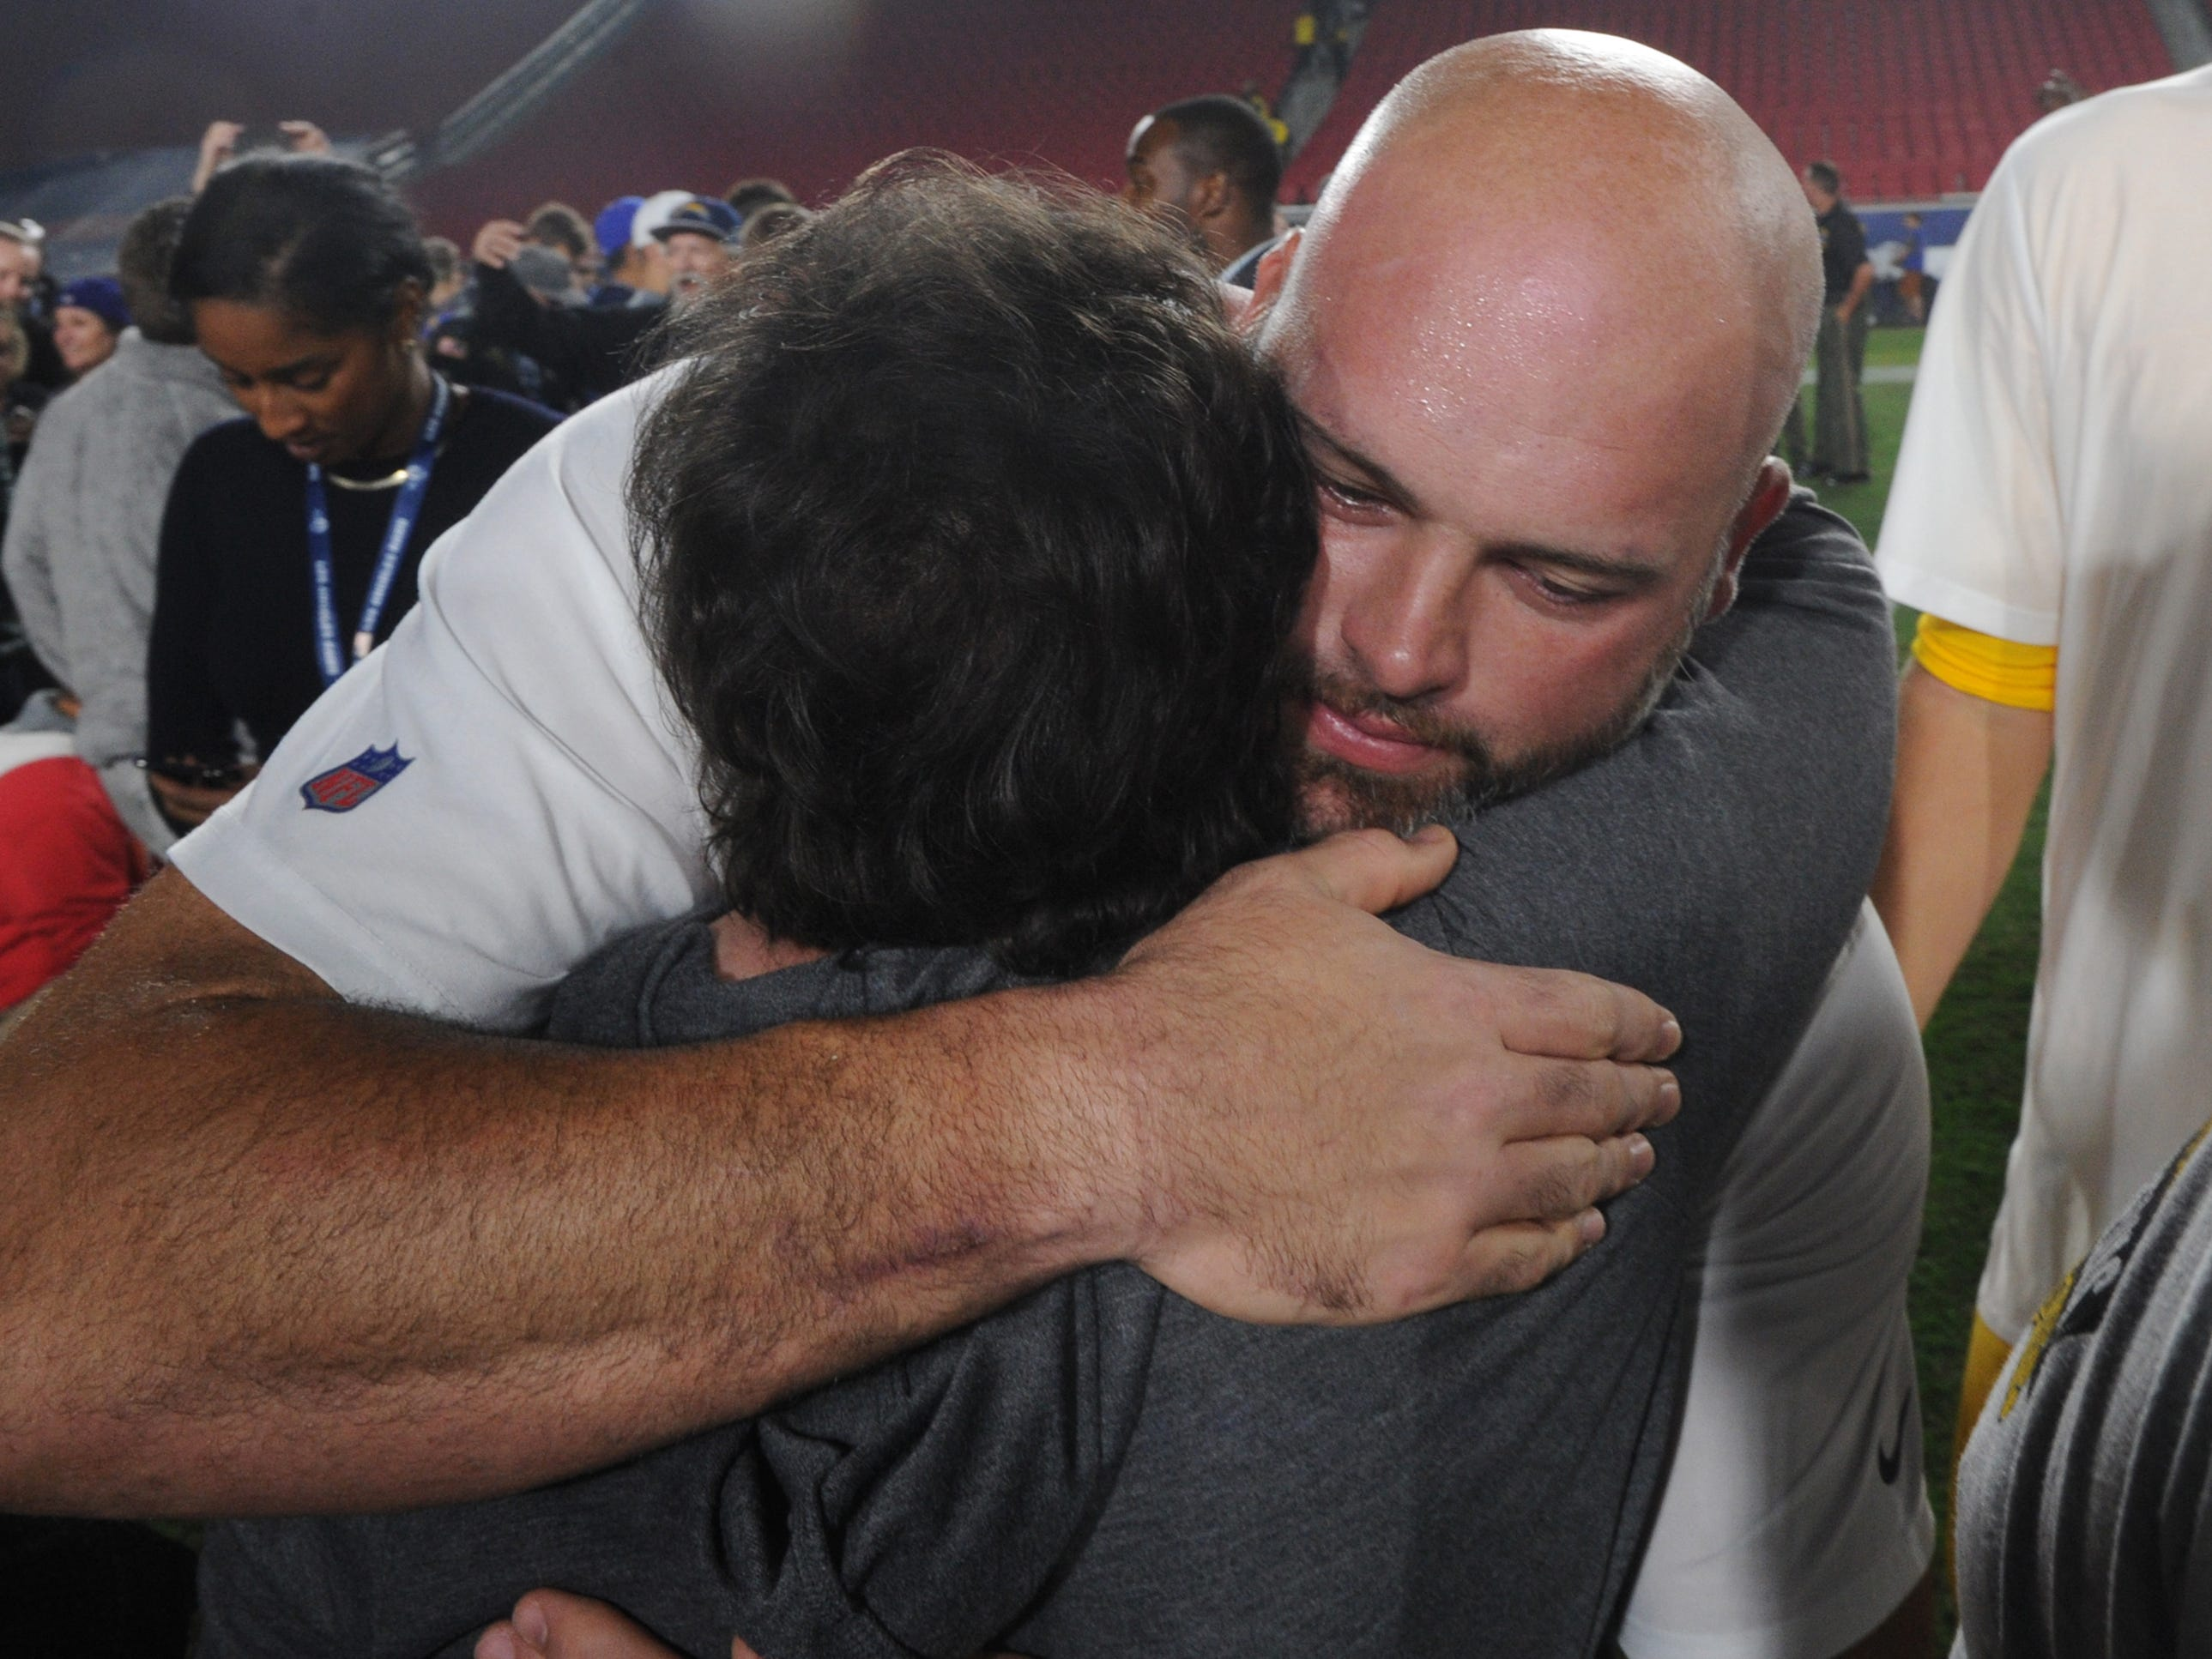 Rams offensive tackle Andrew Whitworth hugs Karen Helus, wife of Ventura County Sheriff's Sgt. Ron Helus, after Monday night's game against the Kansas City Chiefs at the Coliseum. Sgt. Helus was killed in the Borderline Bar & Grill shooting. The Rams honored the family of the victims and also the first responders to the shooting and recent wildfires.